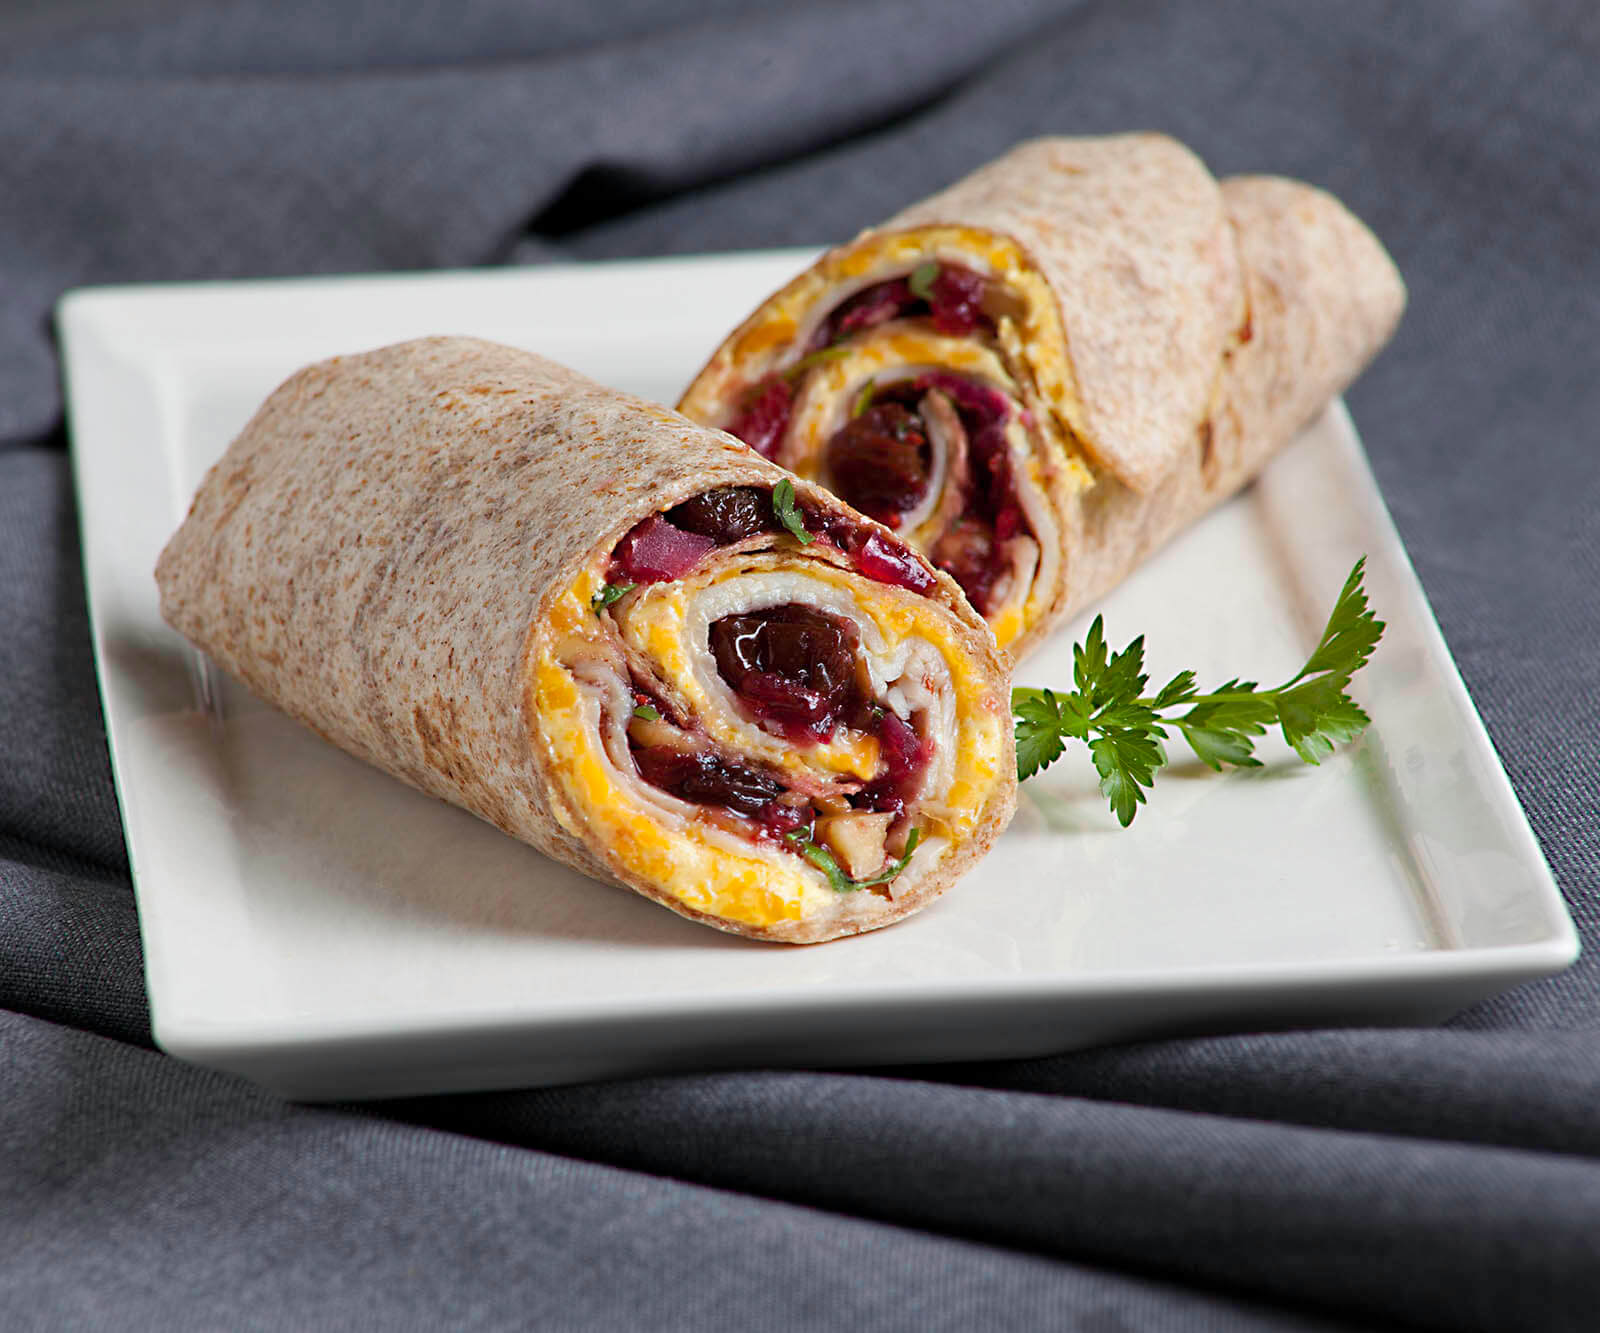 Cranberry-Raisin Turkey Wrap